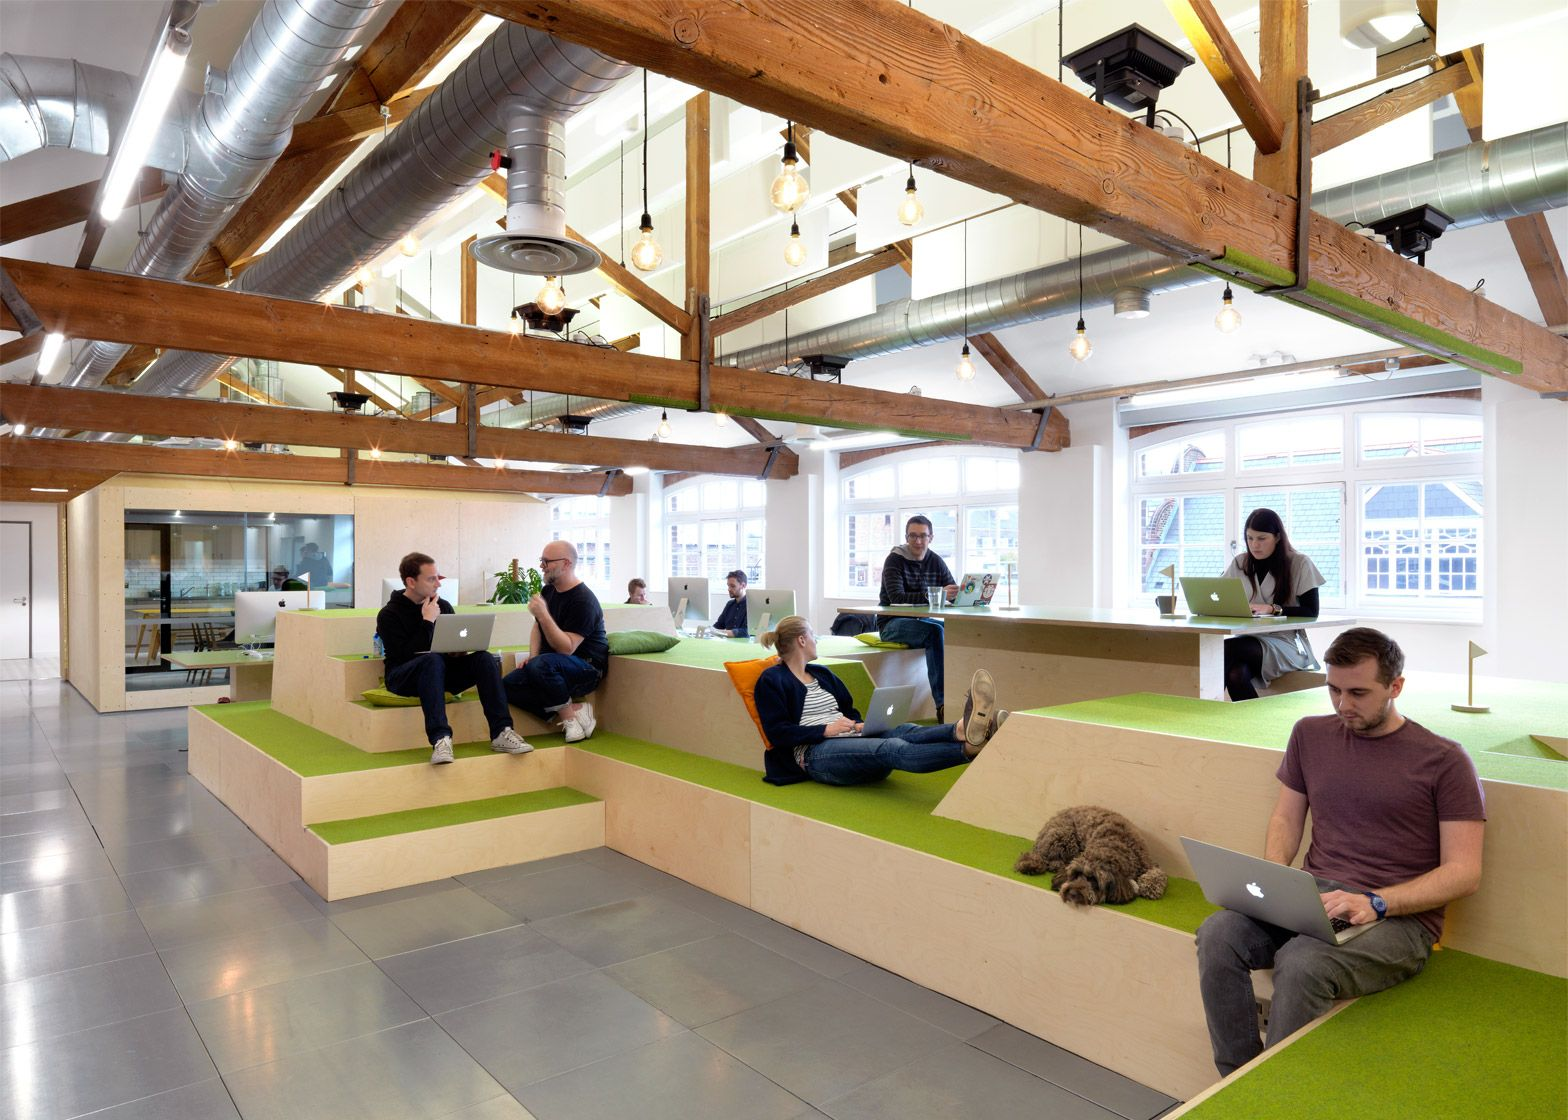 Airbnb 39 s new offices in london 39 s clerkenwell illustrate a for Office space